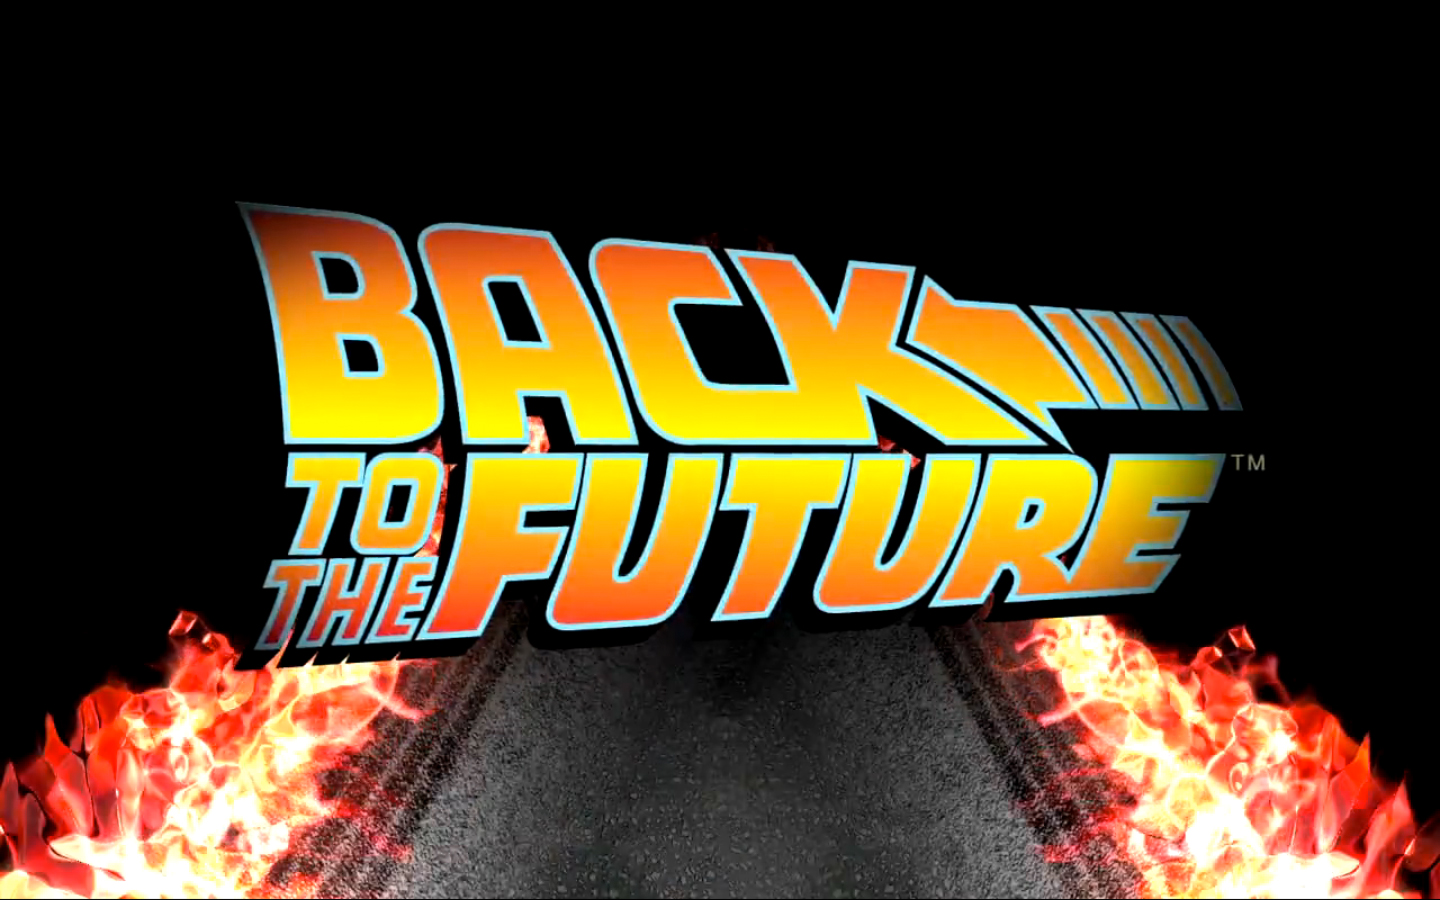 Back To The Future Wallpaper 1920x1080 Download Wallpaper 1440x900